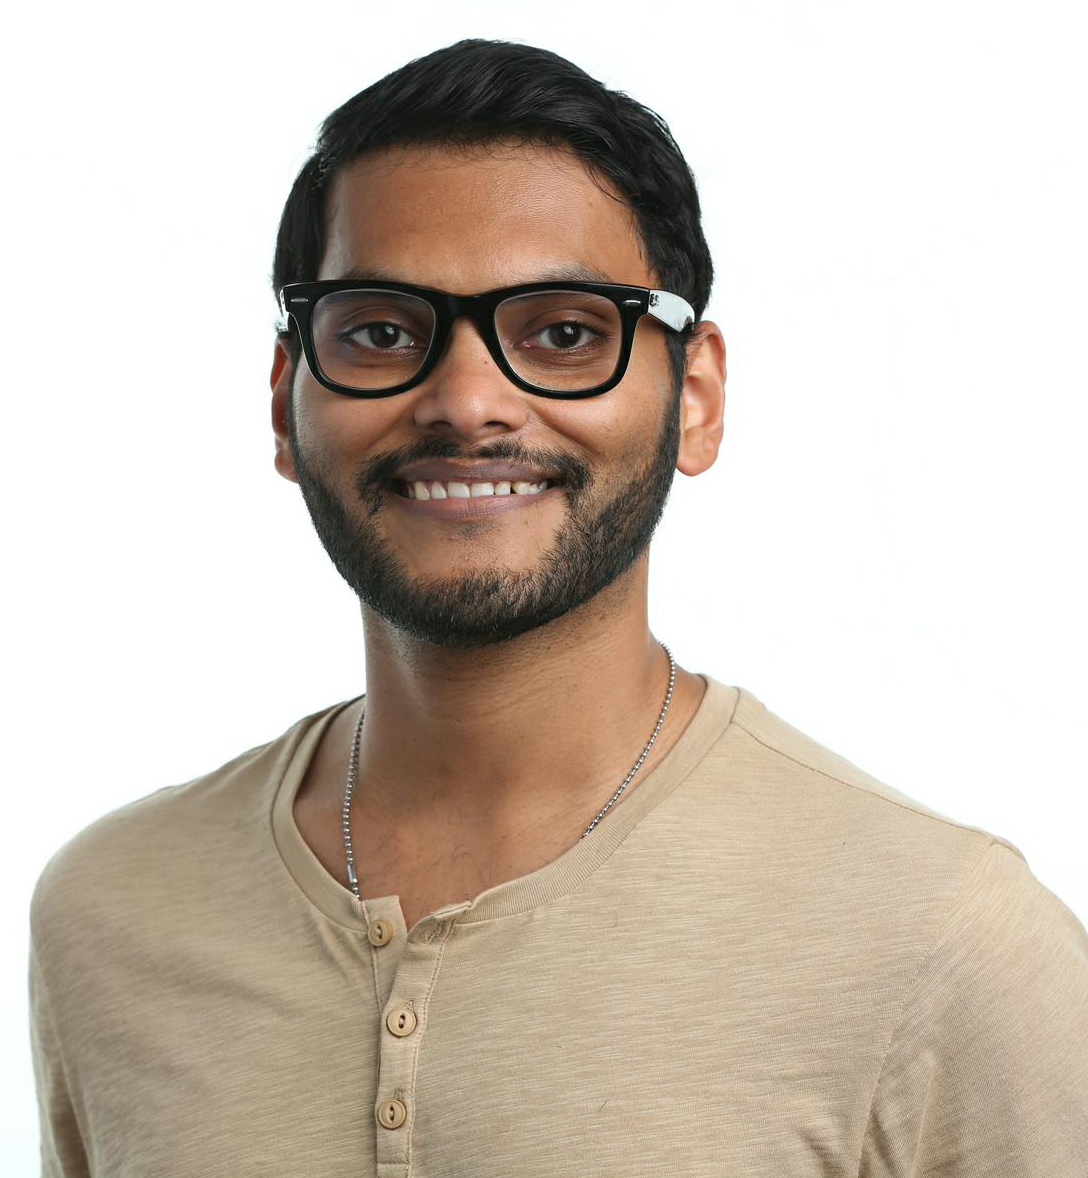 Prior to founding Endear, Jinesh worked at Rokk3r Labs as a Product Architect where he managed a team of product designers & developers to build mobile & web experiences experiences for a diverse set of clients. With his expertise in user experience design and programming, he leads Endear's product design and development.